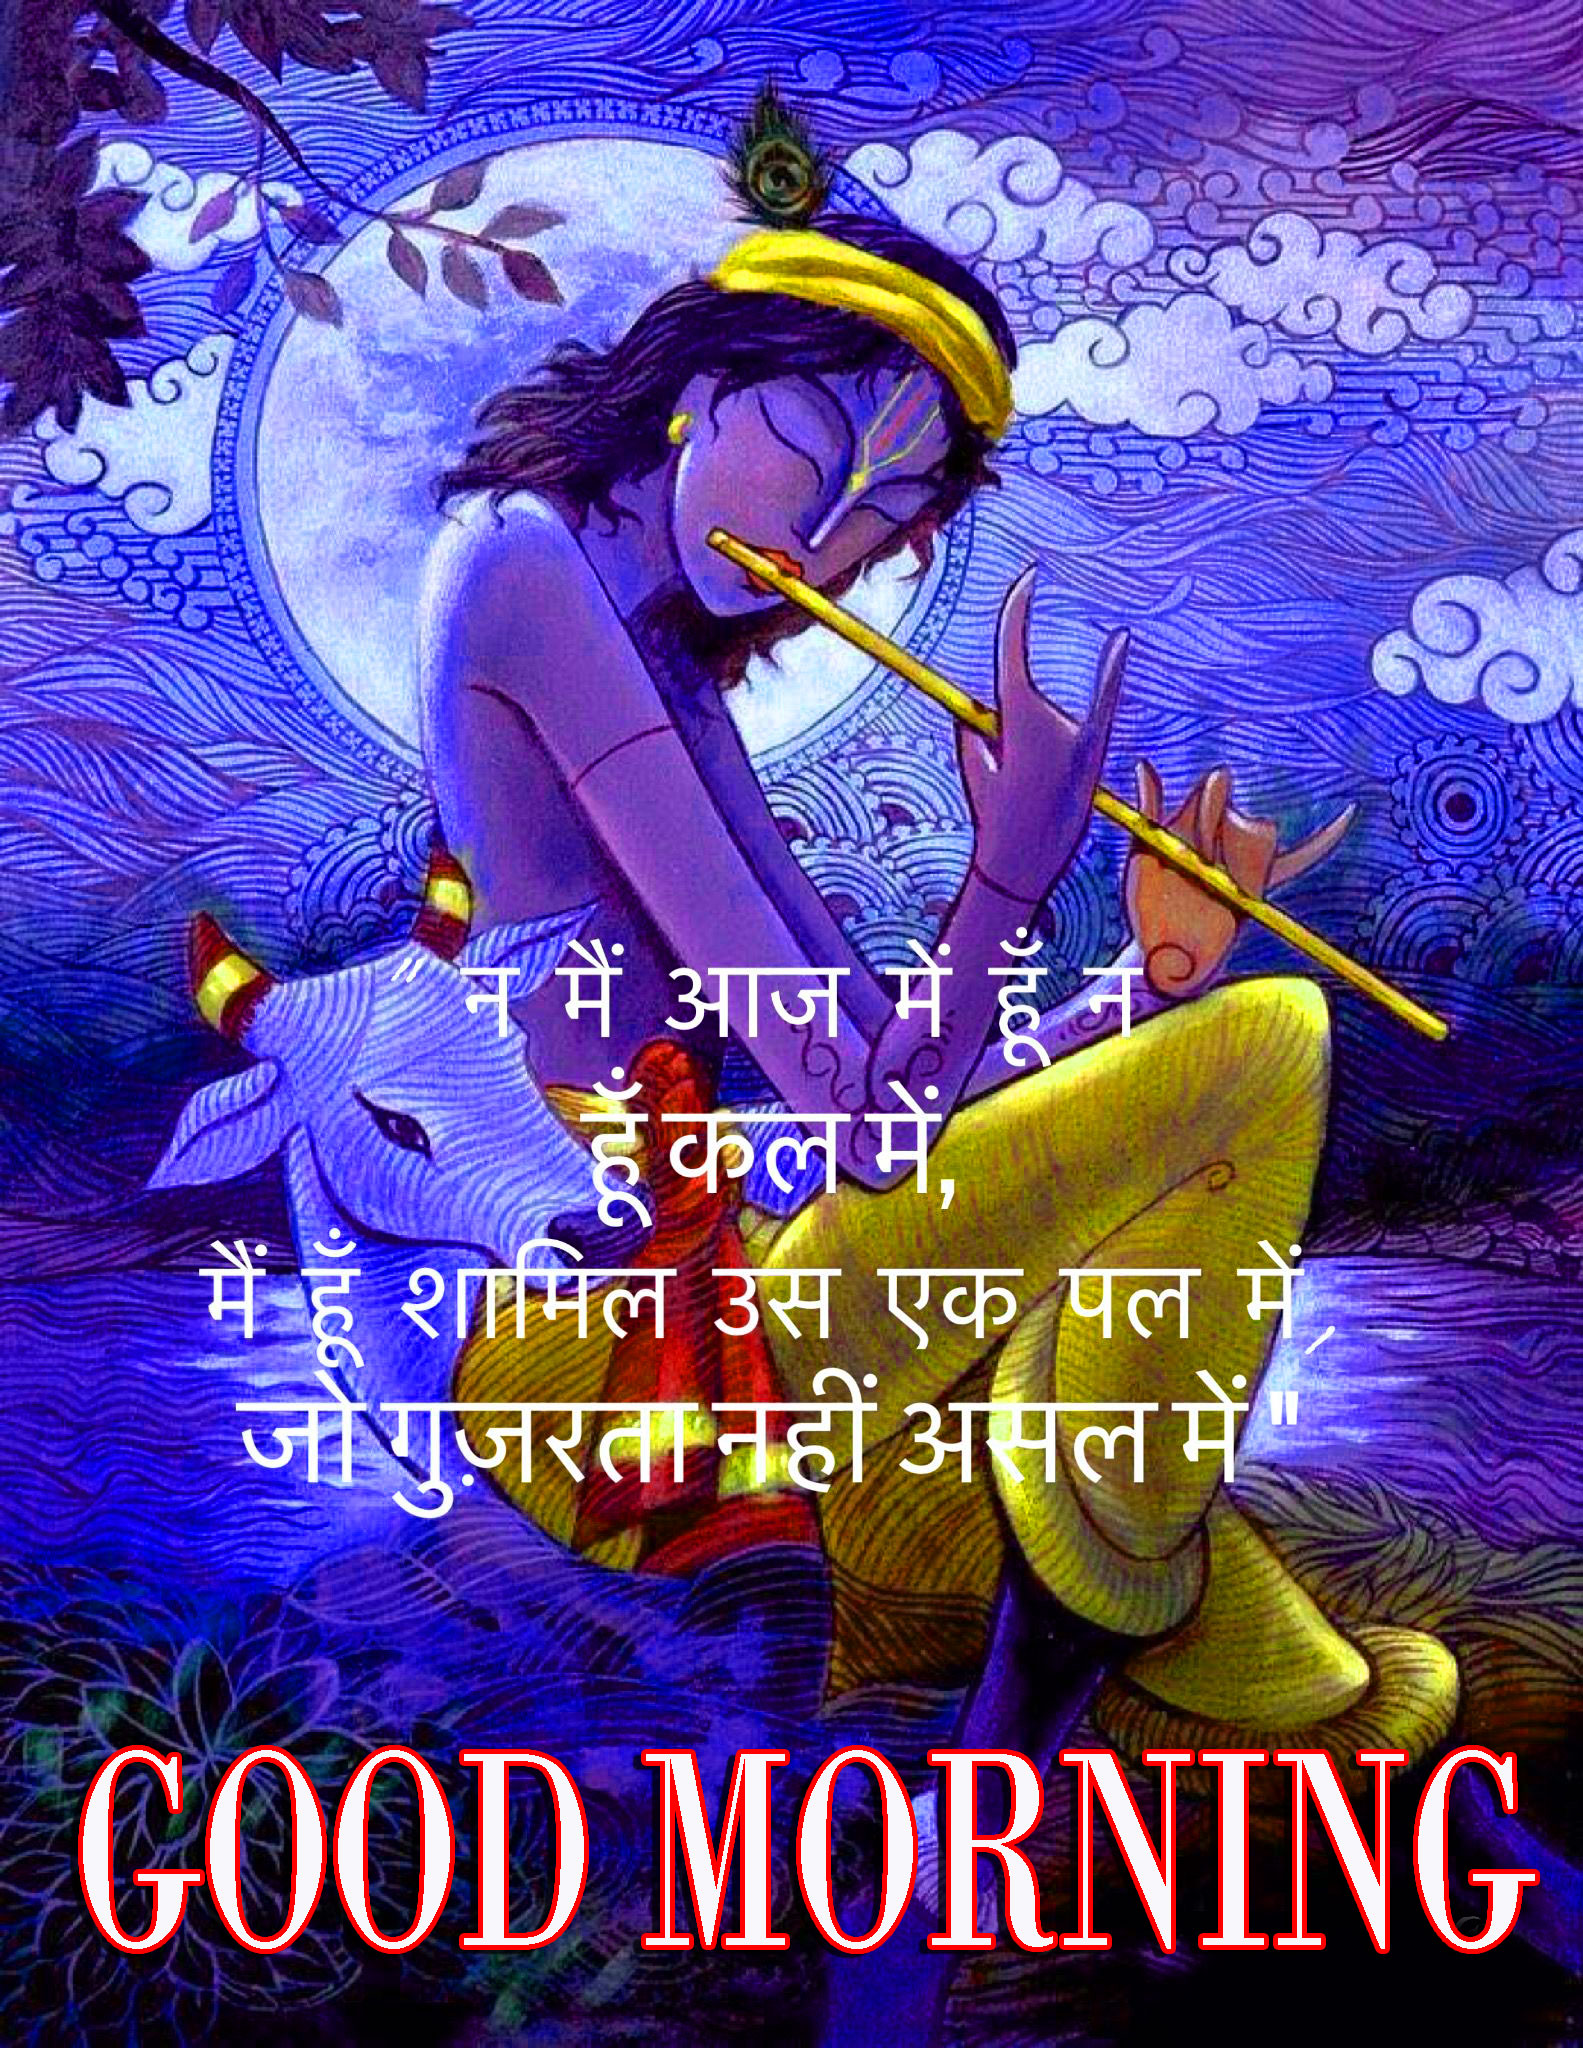 Good morning love images hindi